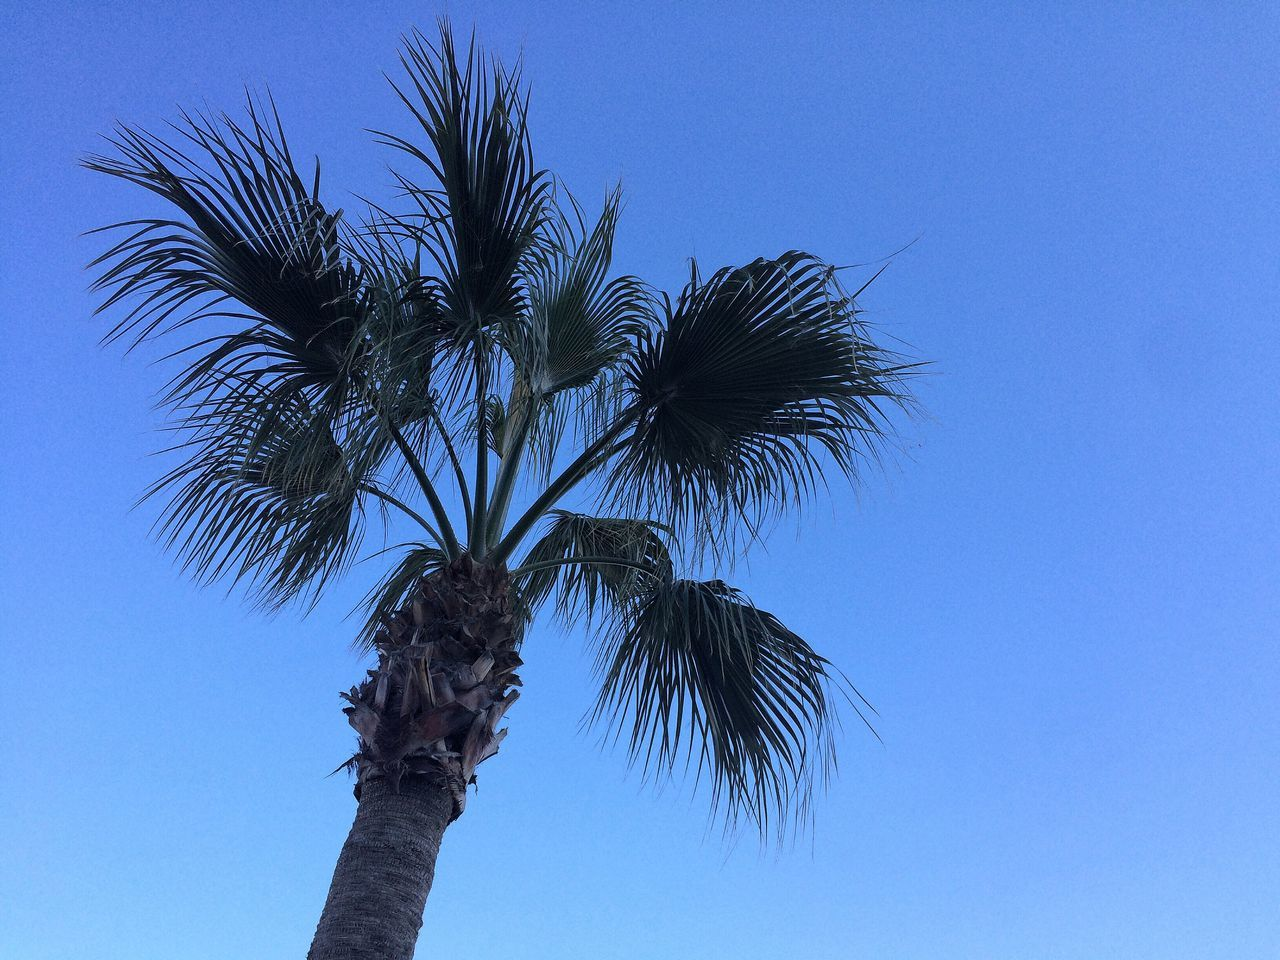 Palm Tree Low Angle View Tree Blue Clear Sky Nature Tree Trunk Growth No People Sky Outdoors Day Treetop Beauty In Nature Palm Frond